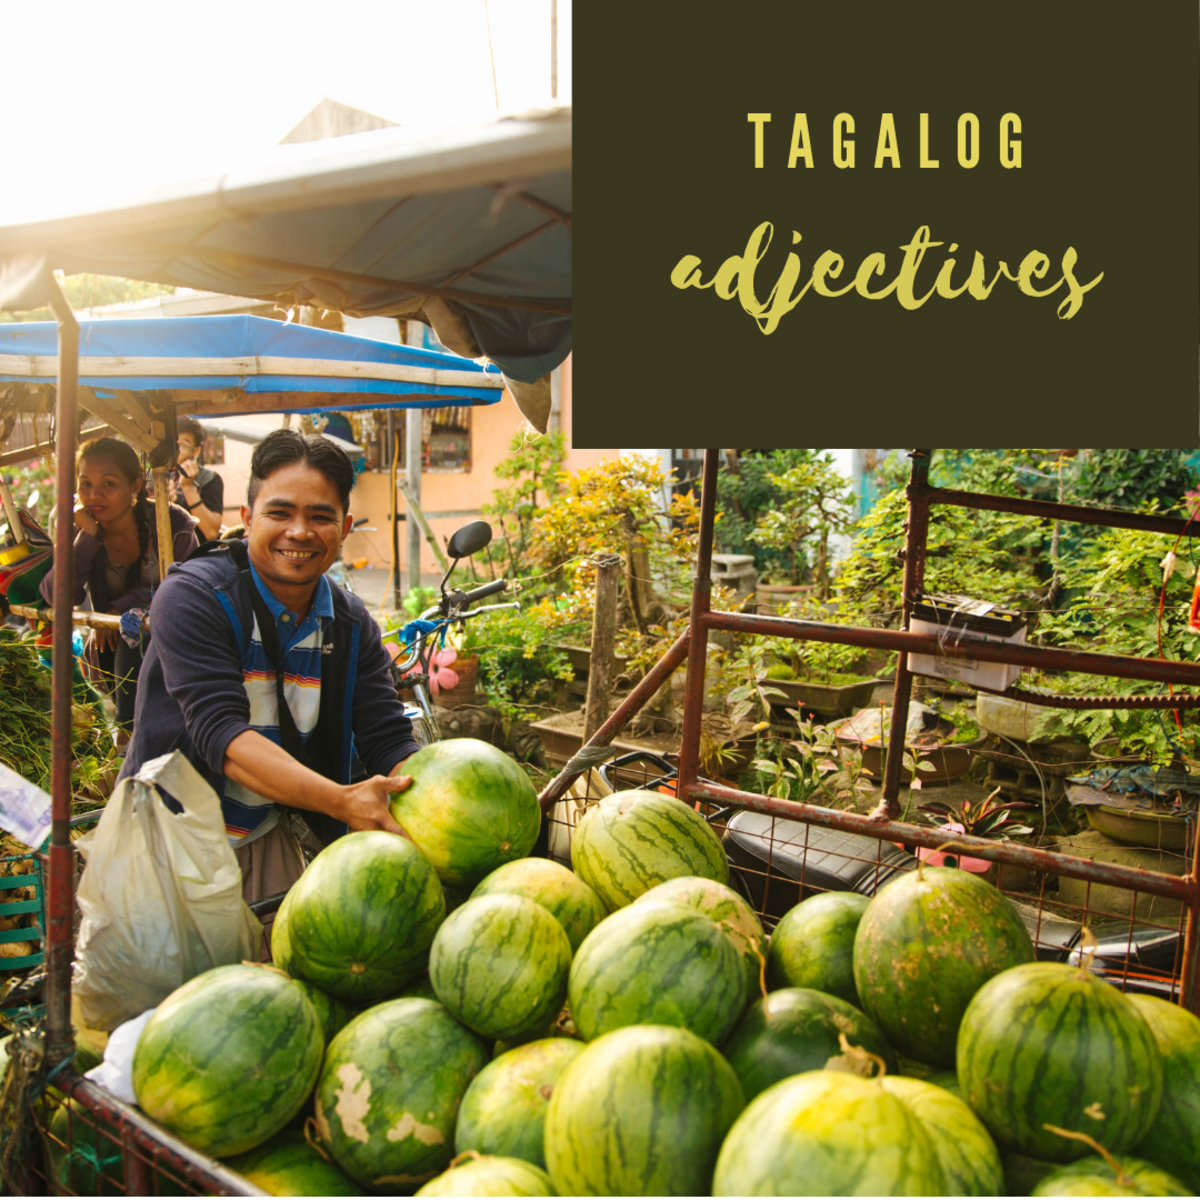 Learn how to describe the things around you with Filipino adjectives!